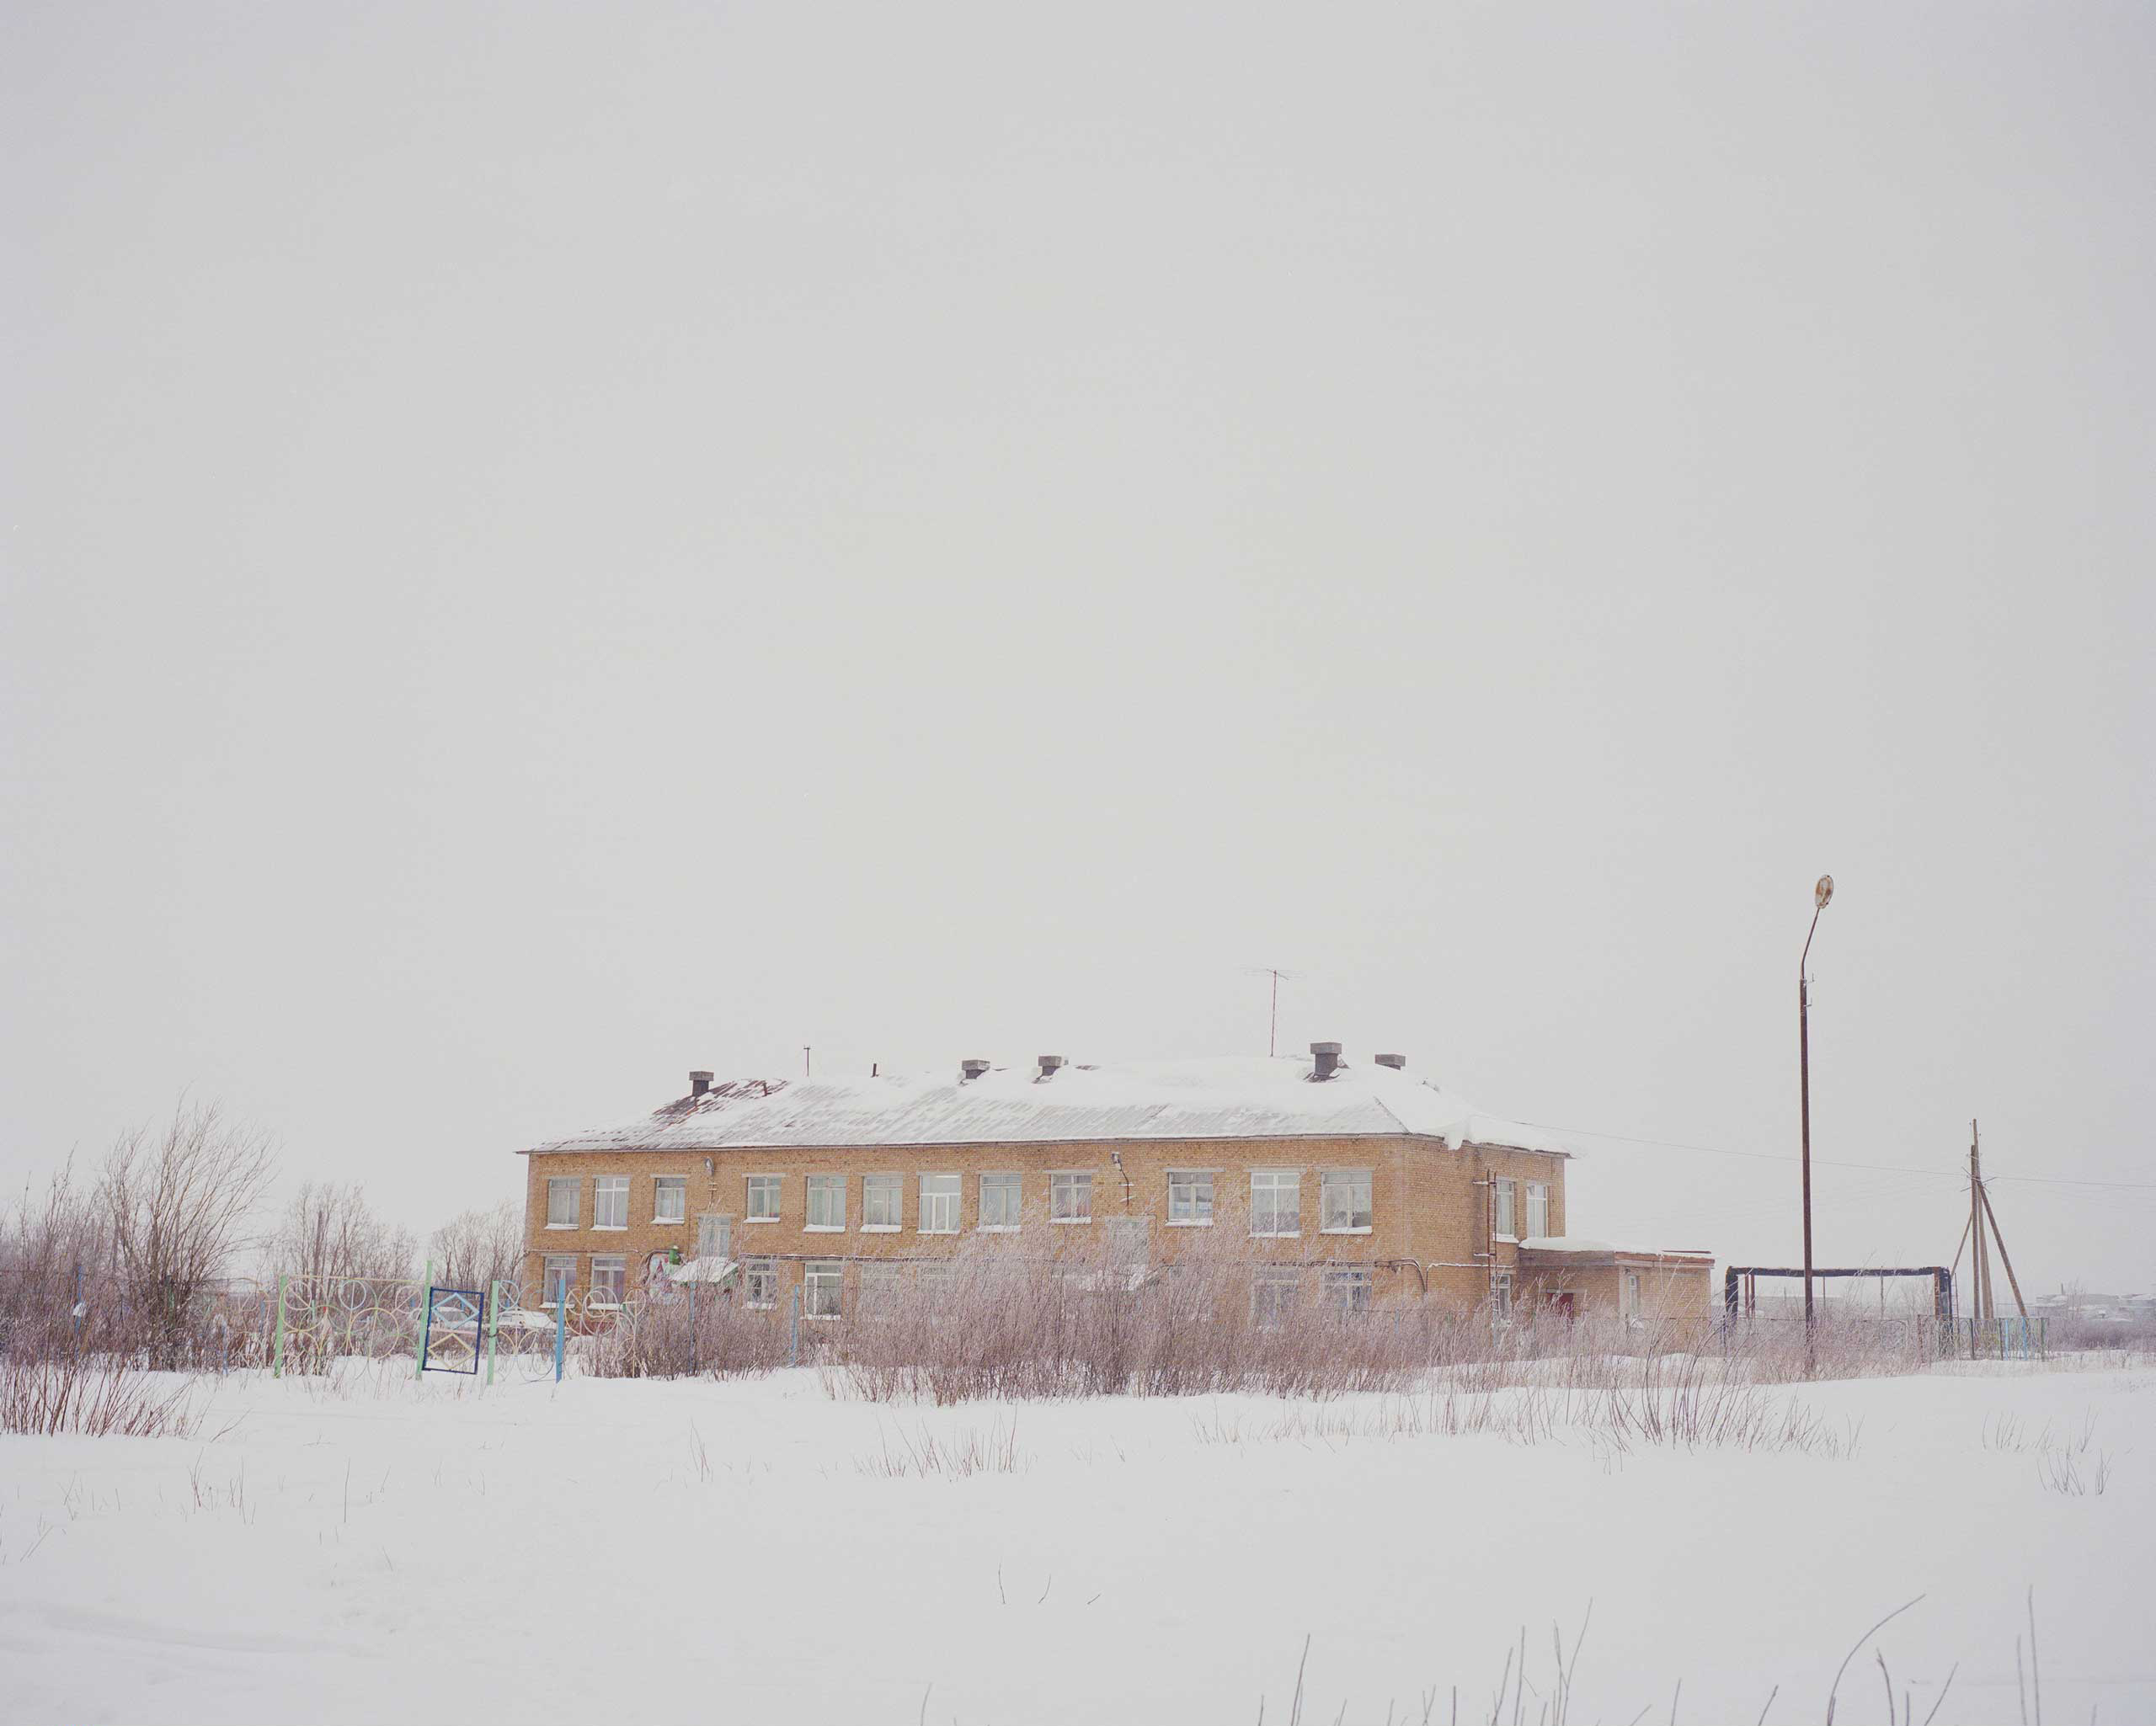 The exterior of the boarding school for the ethnic Nenets in Vorkuta, Russia. All the photographs were made in Nov. 2014.